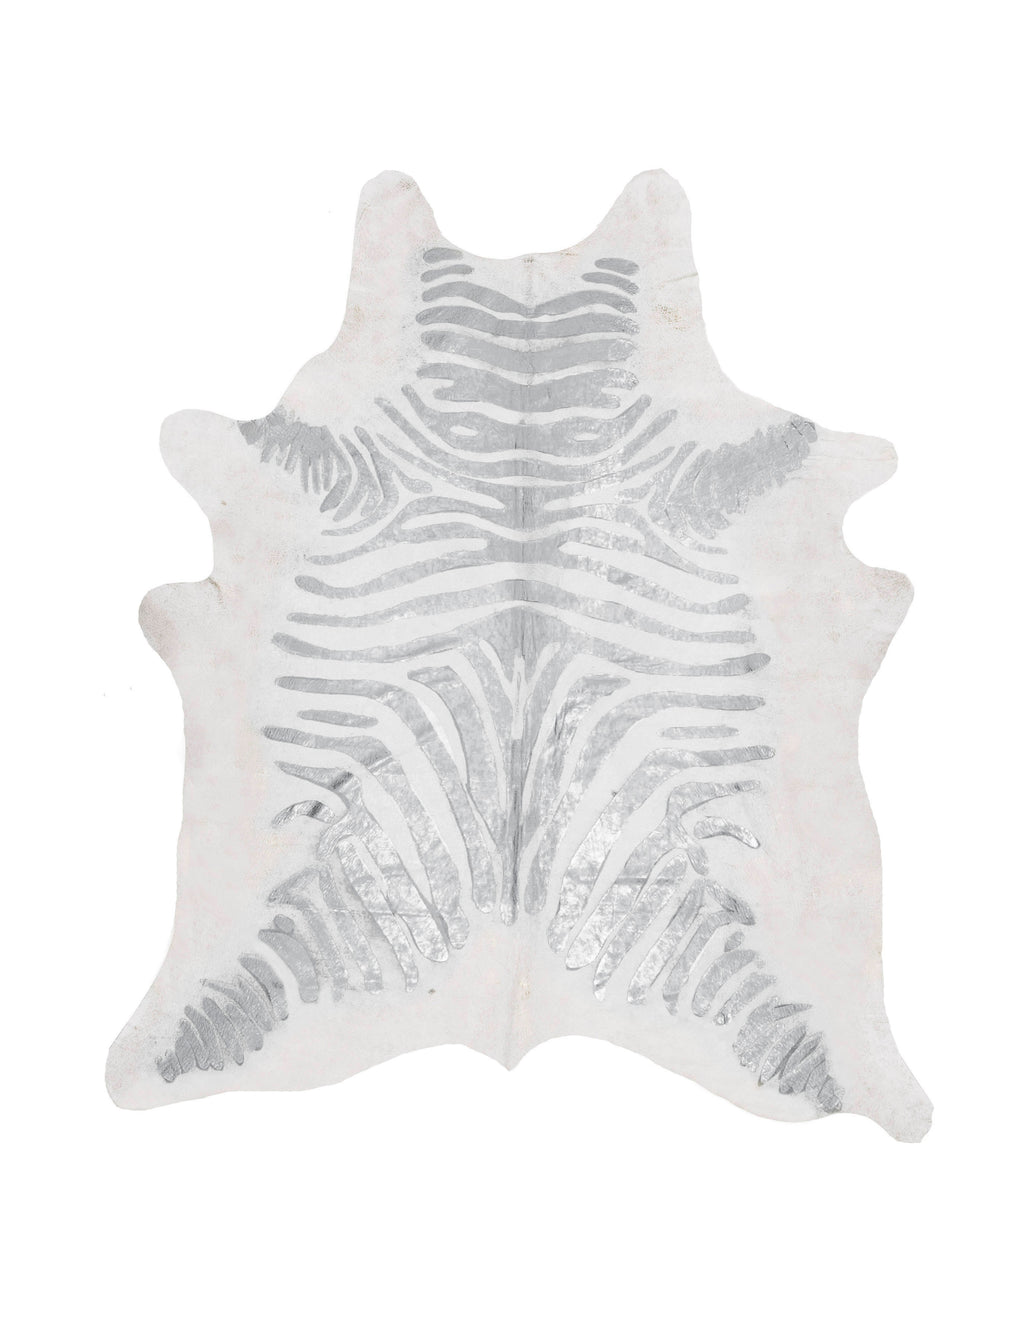 Zebra Silver on Off White Metallic Cowhide Rug